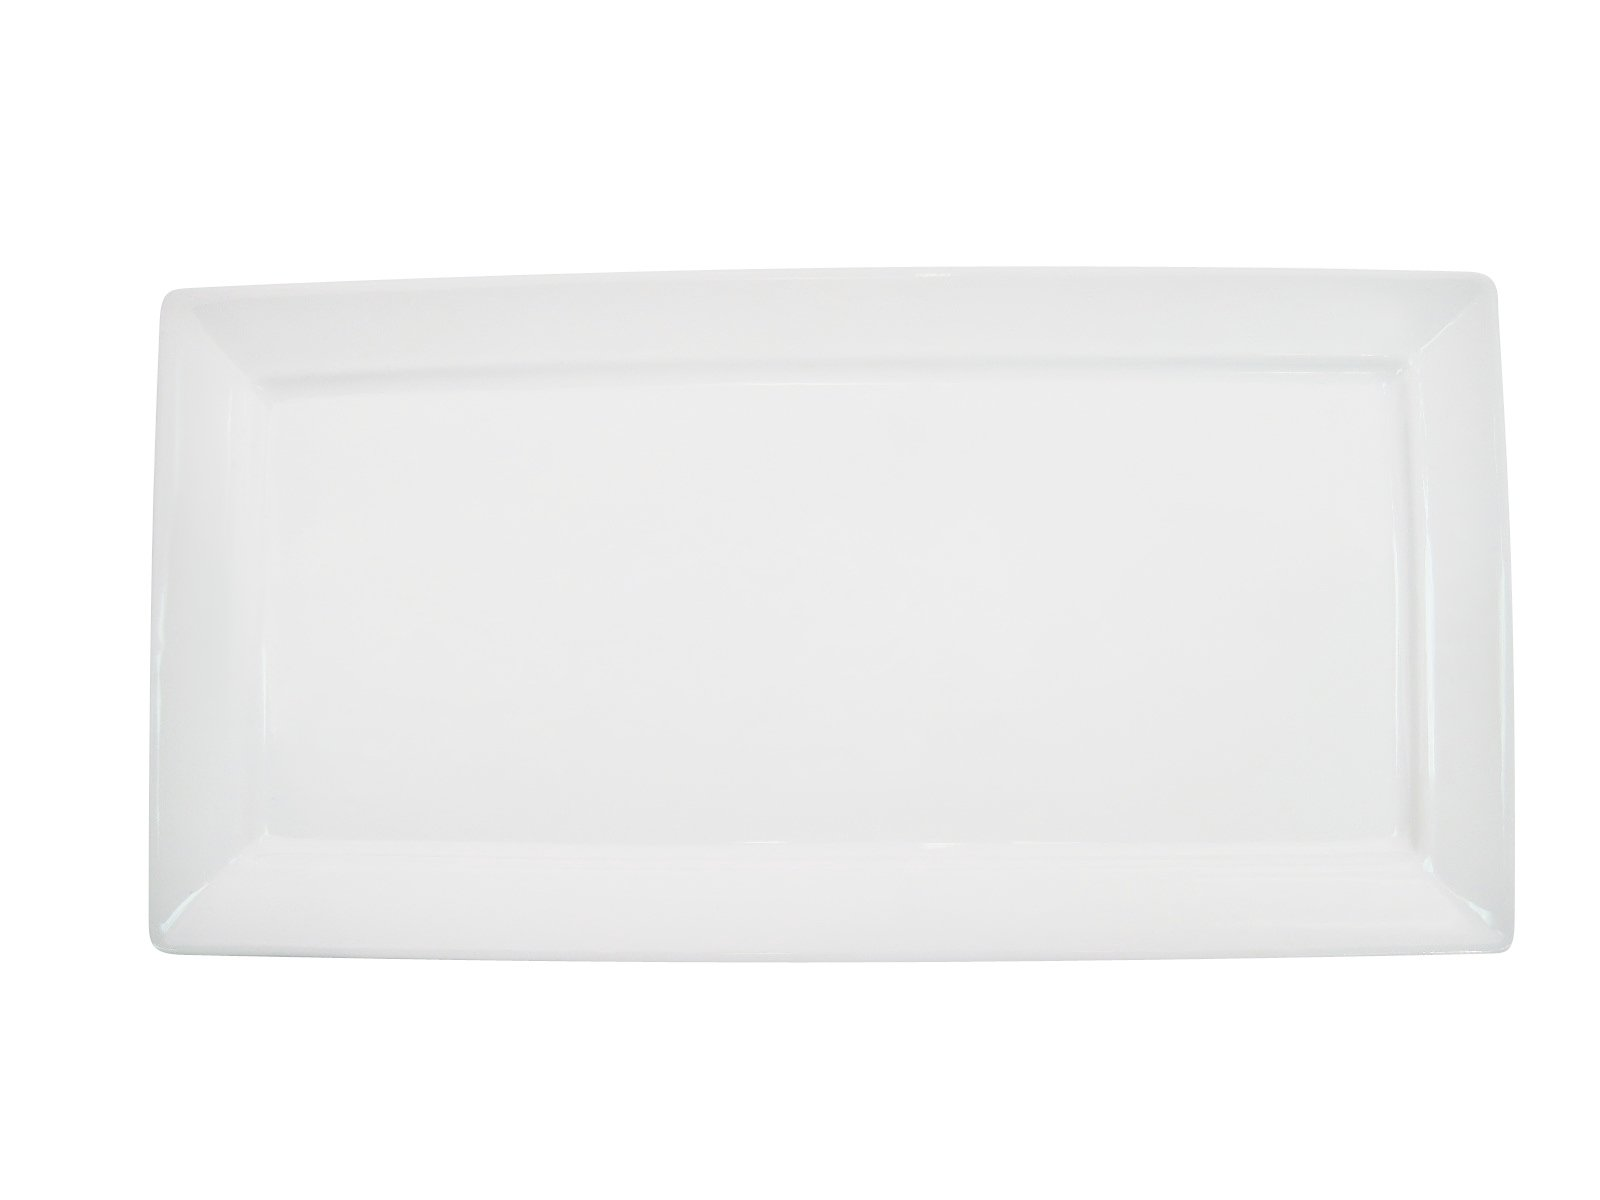 CAC China F-RP41 Paris-French Square 14-Inch by 6-Inch New Bone White Porcelain Thin Rectangular Platter, Box of 12